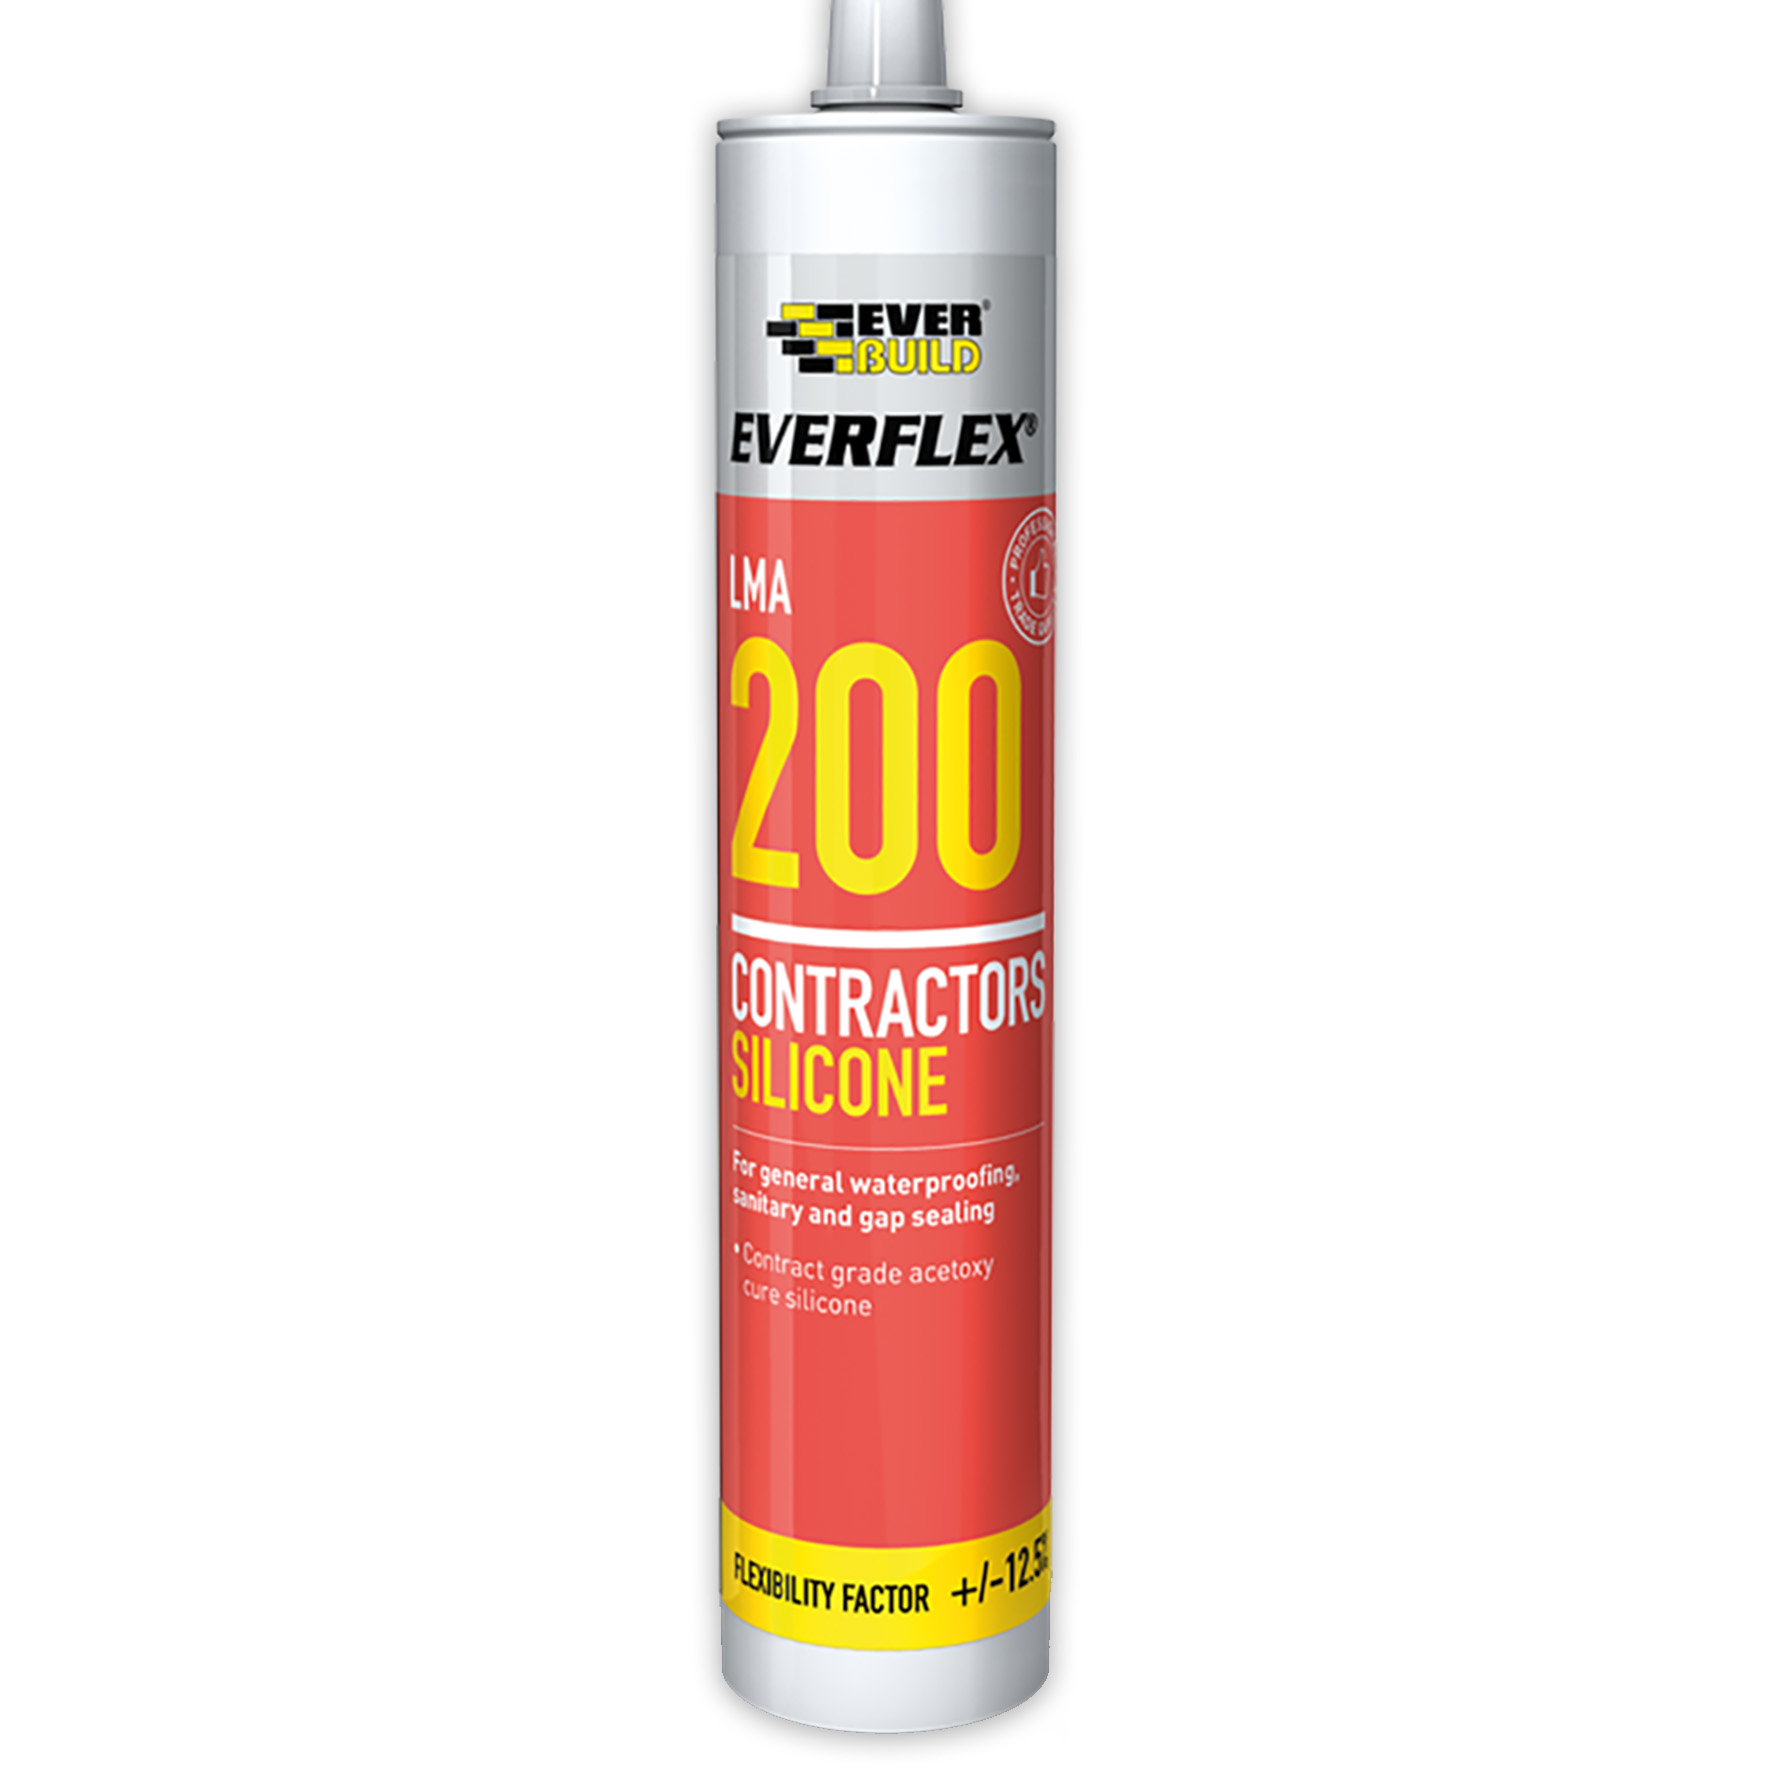 Everbuild Everflex 200 LMA Interior Contractors Silicone